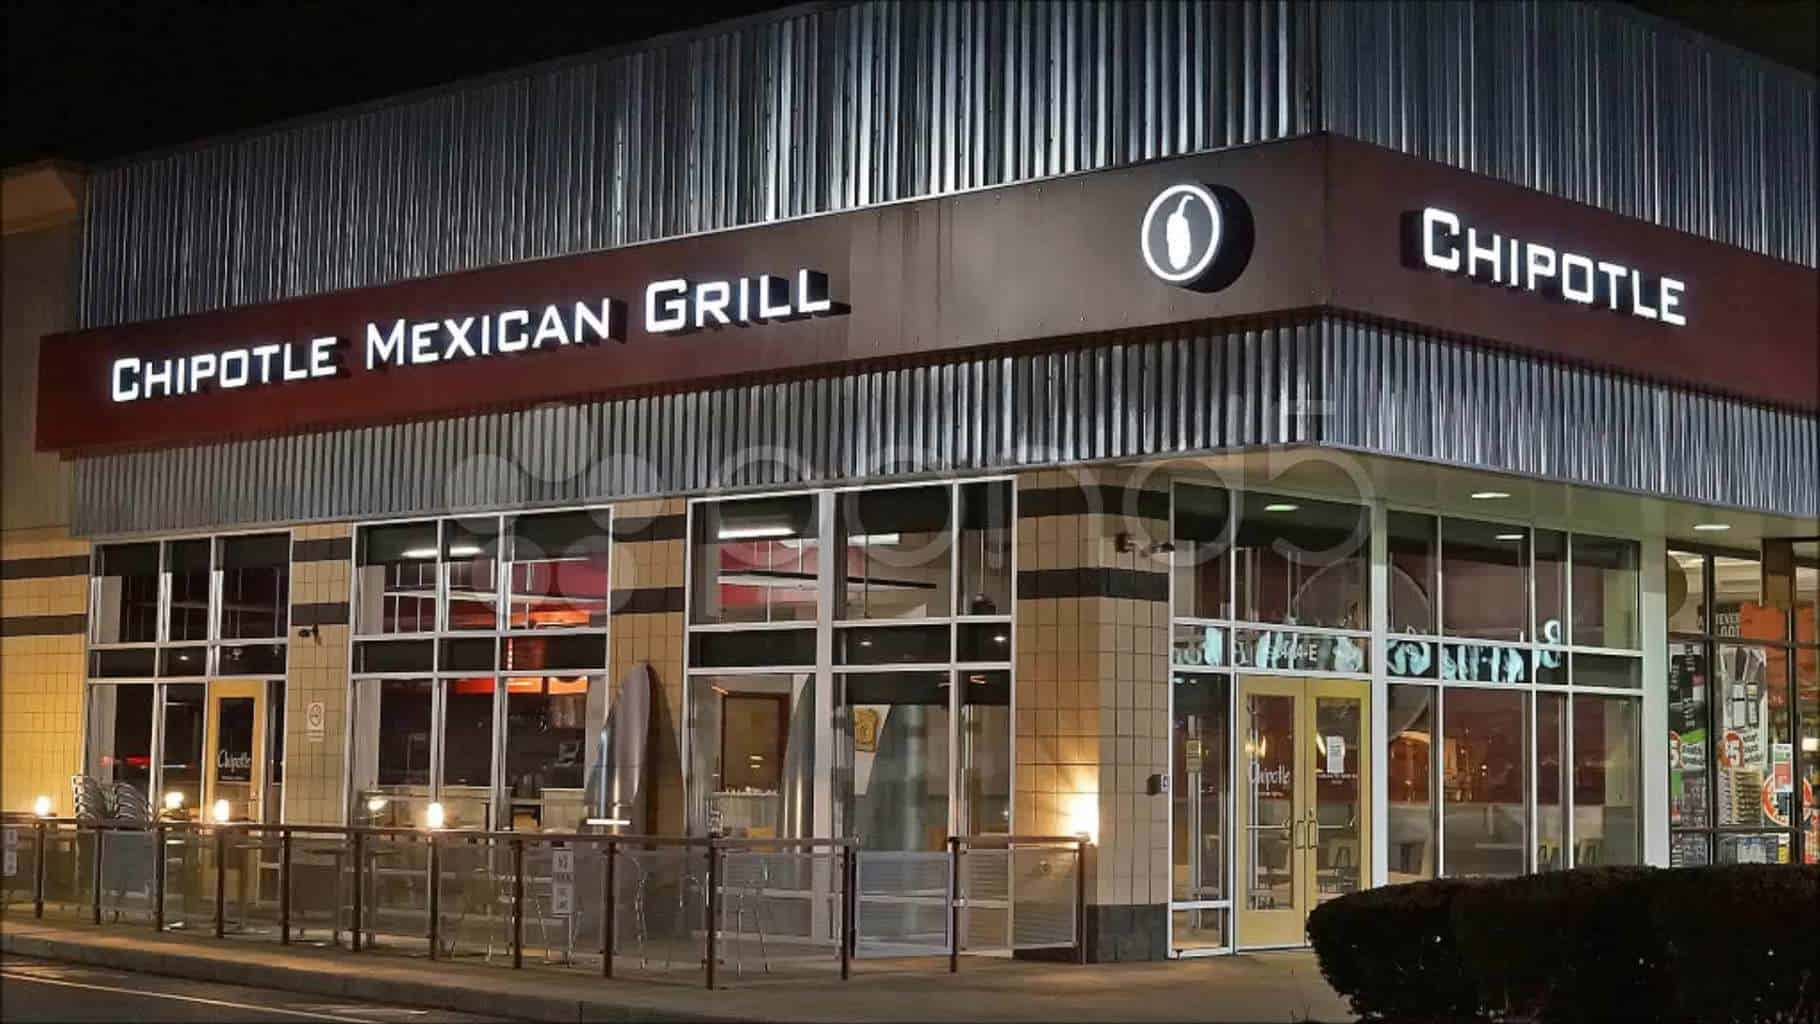 Chipotle Mexican Grill (NYSE:CMG)